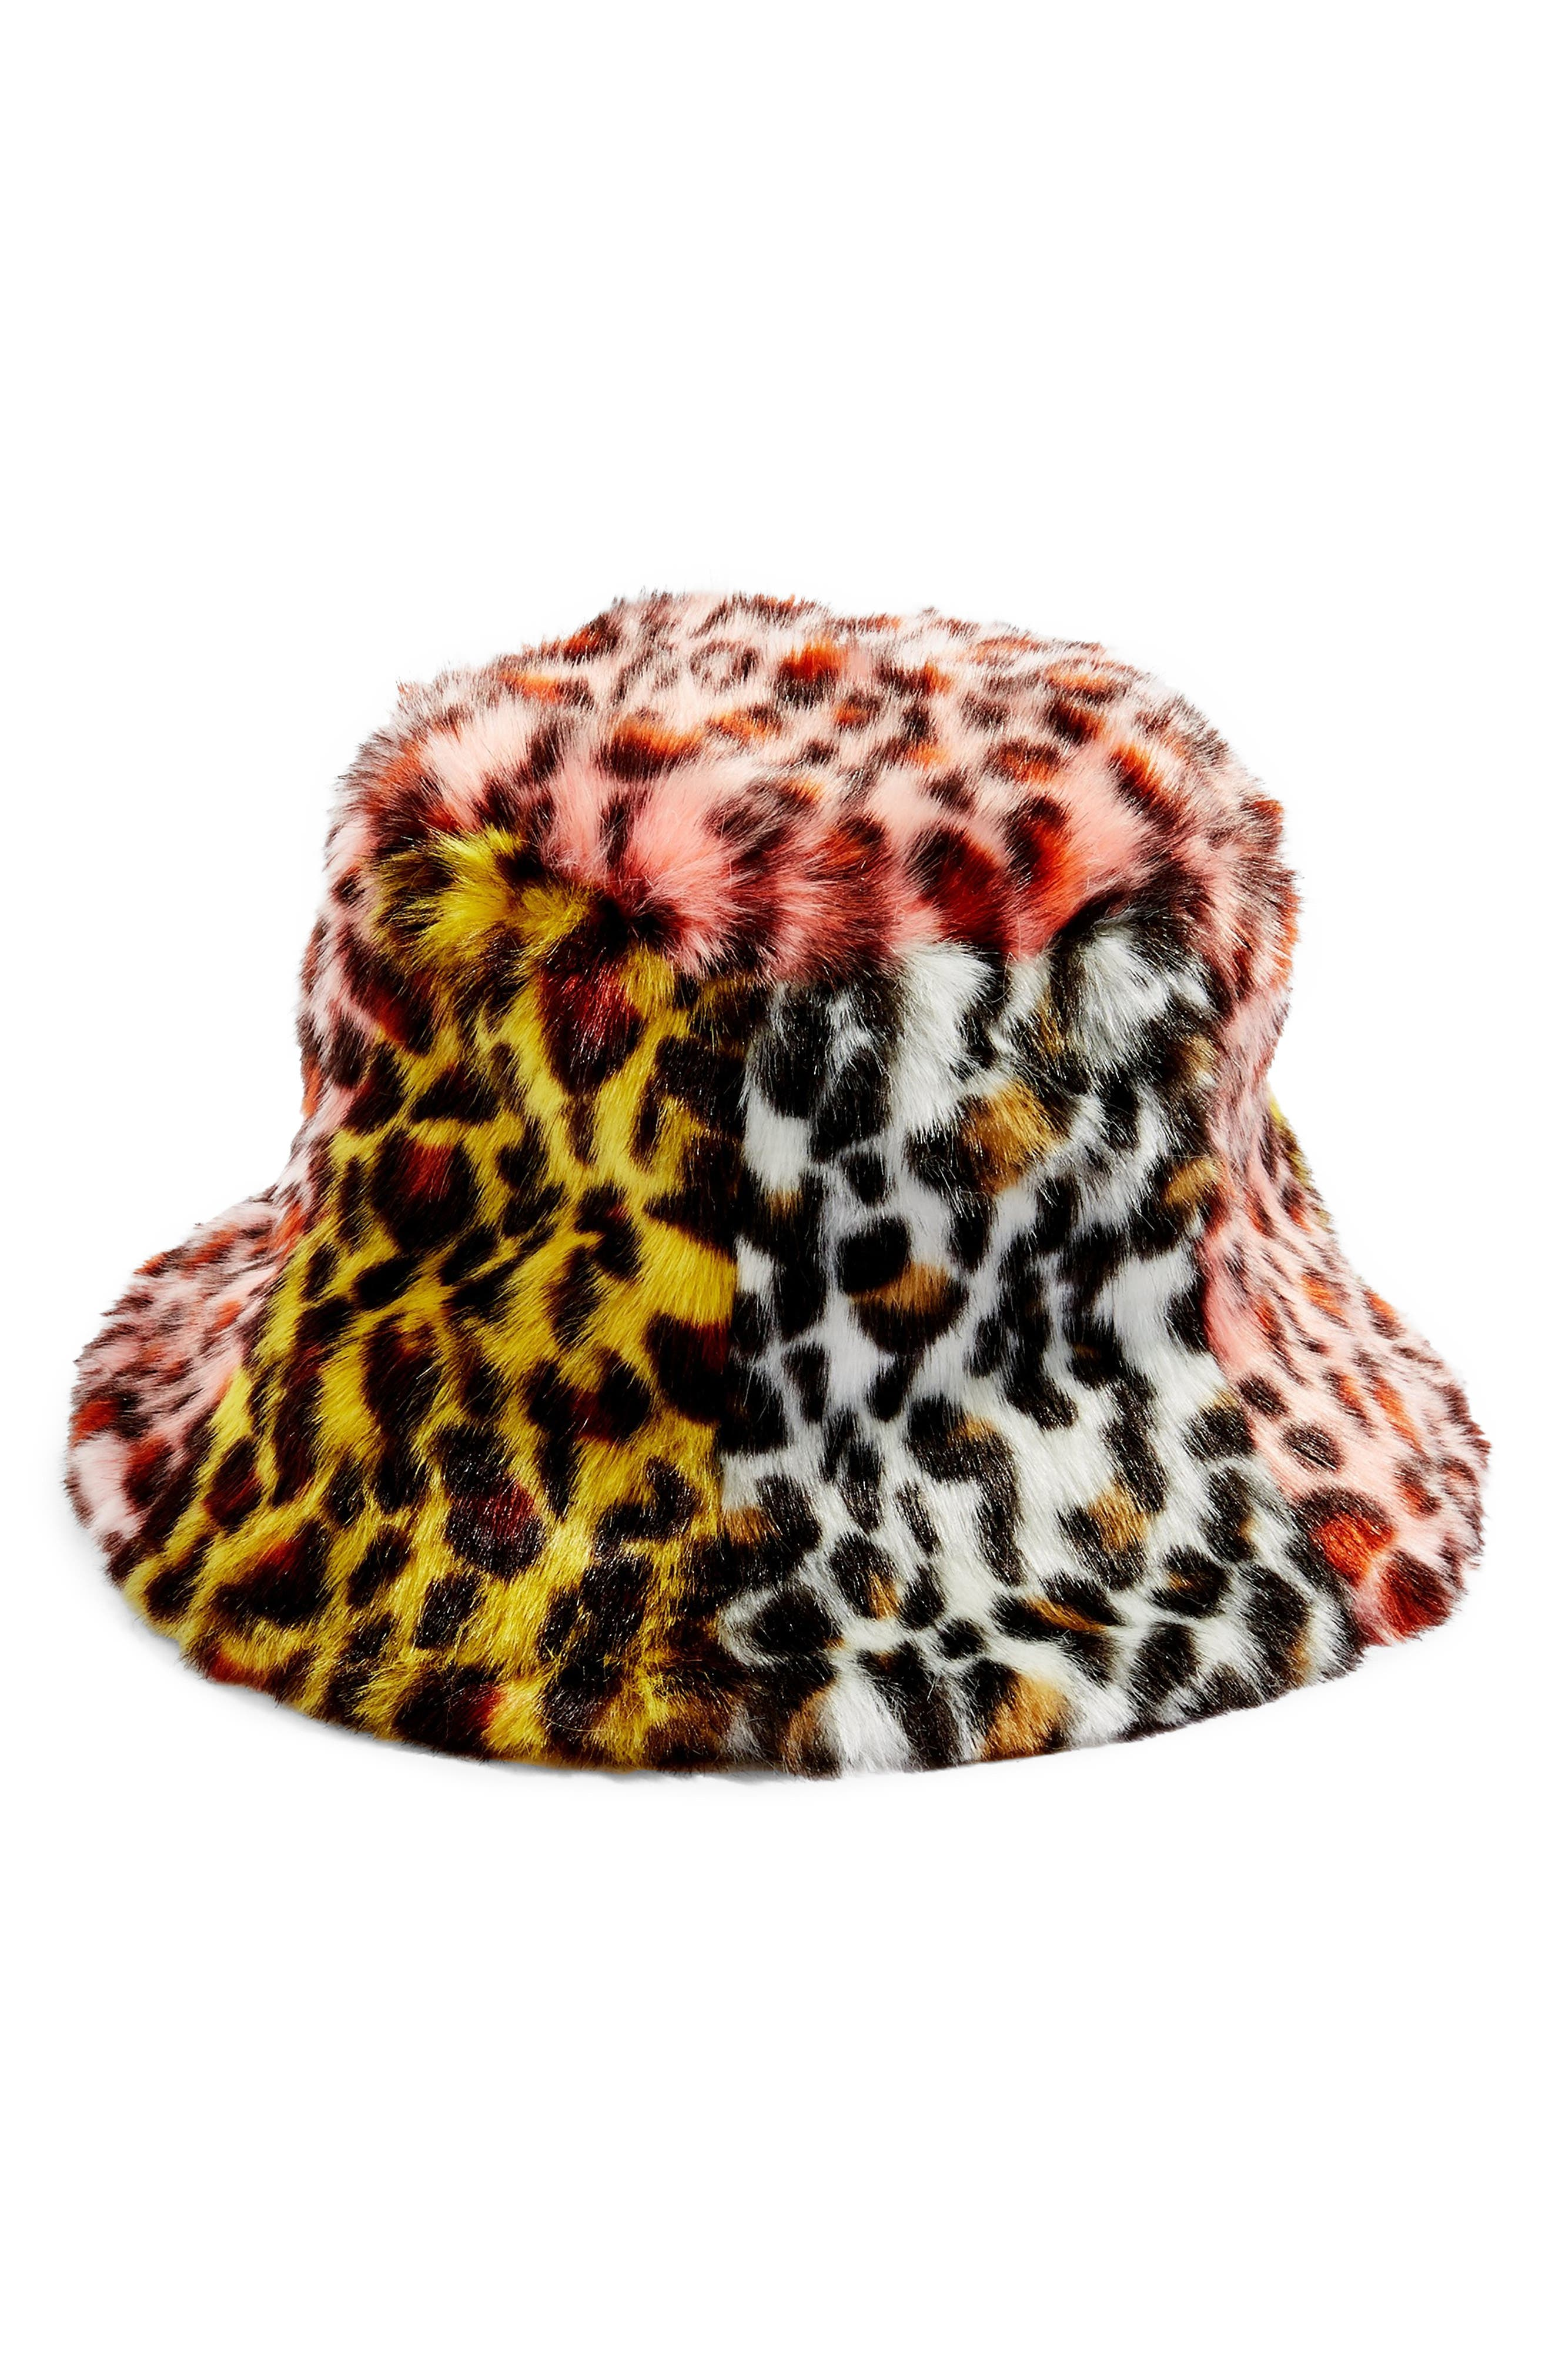 bbed04e22a4 Topshop Hats for Women